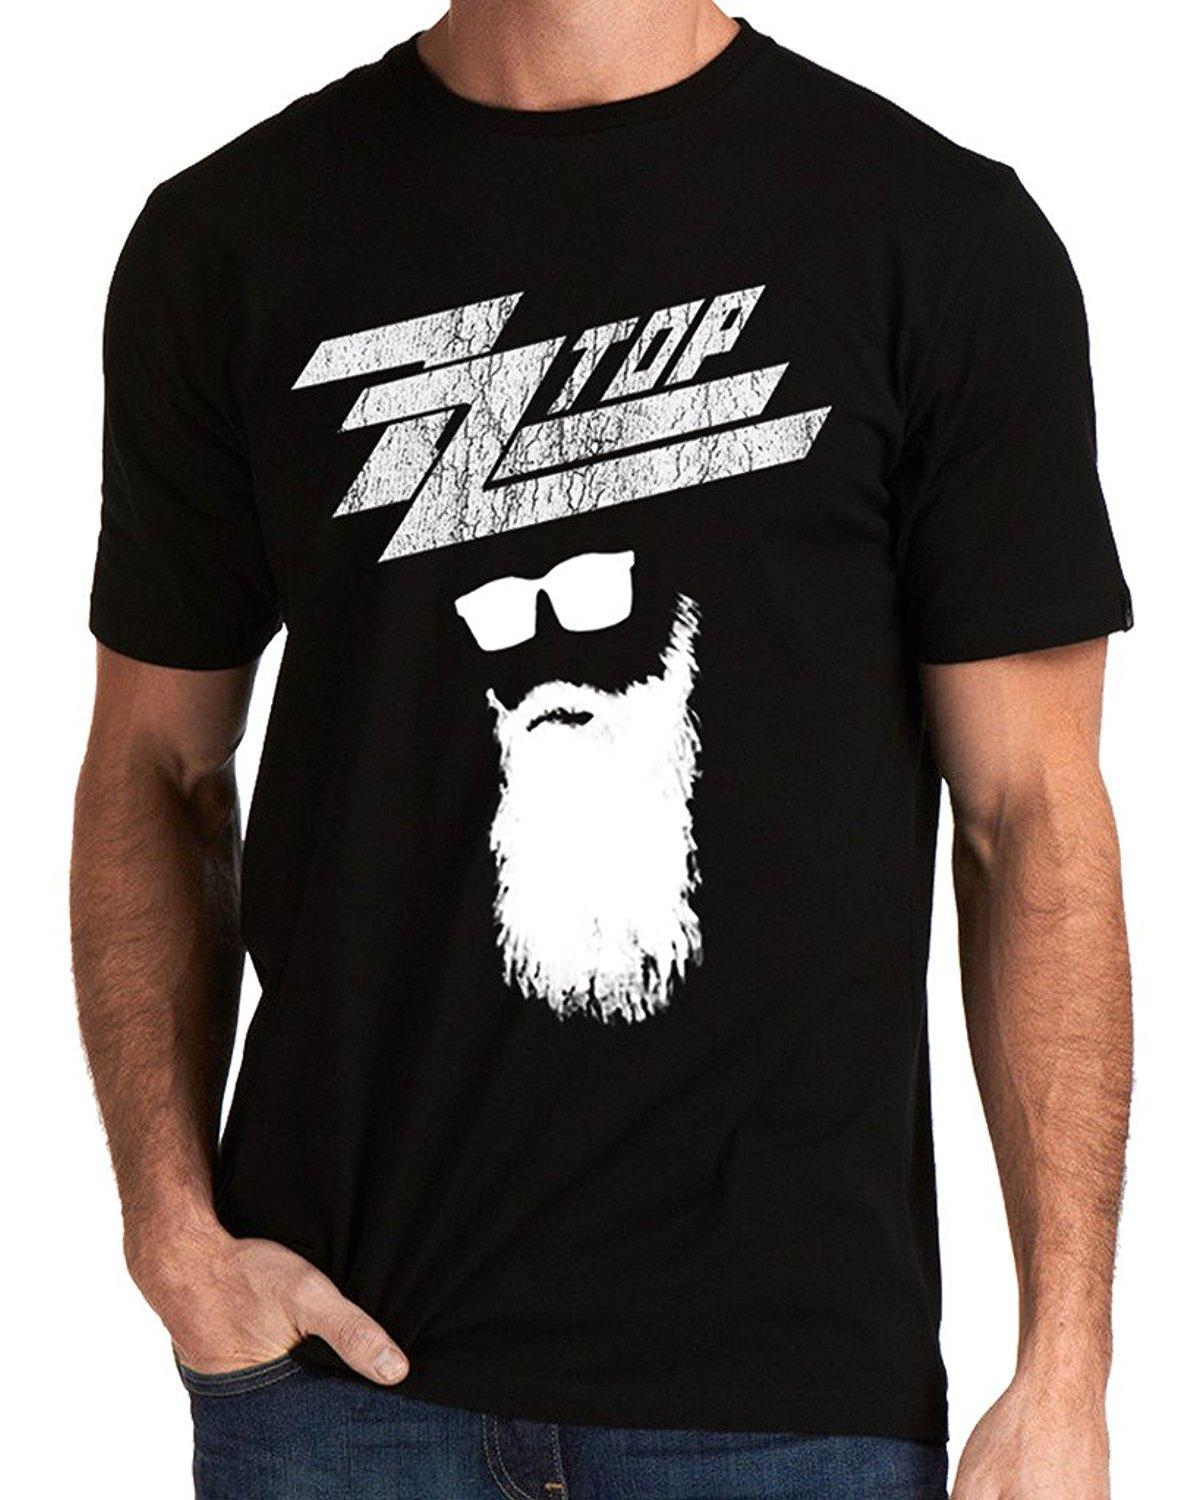 0baa4eee ZZ Top Rock Band Logo Texas Men's T-shirt Design Style New Fashion Short  Sleeve T Shirt Casual Man Tees Round Neck Teenage